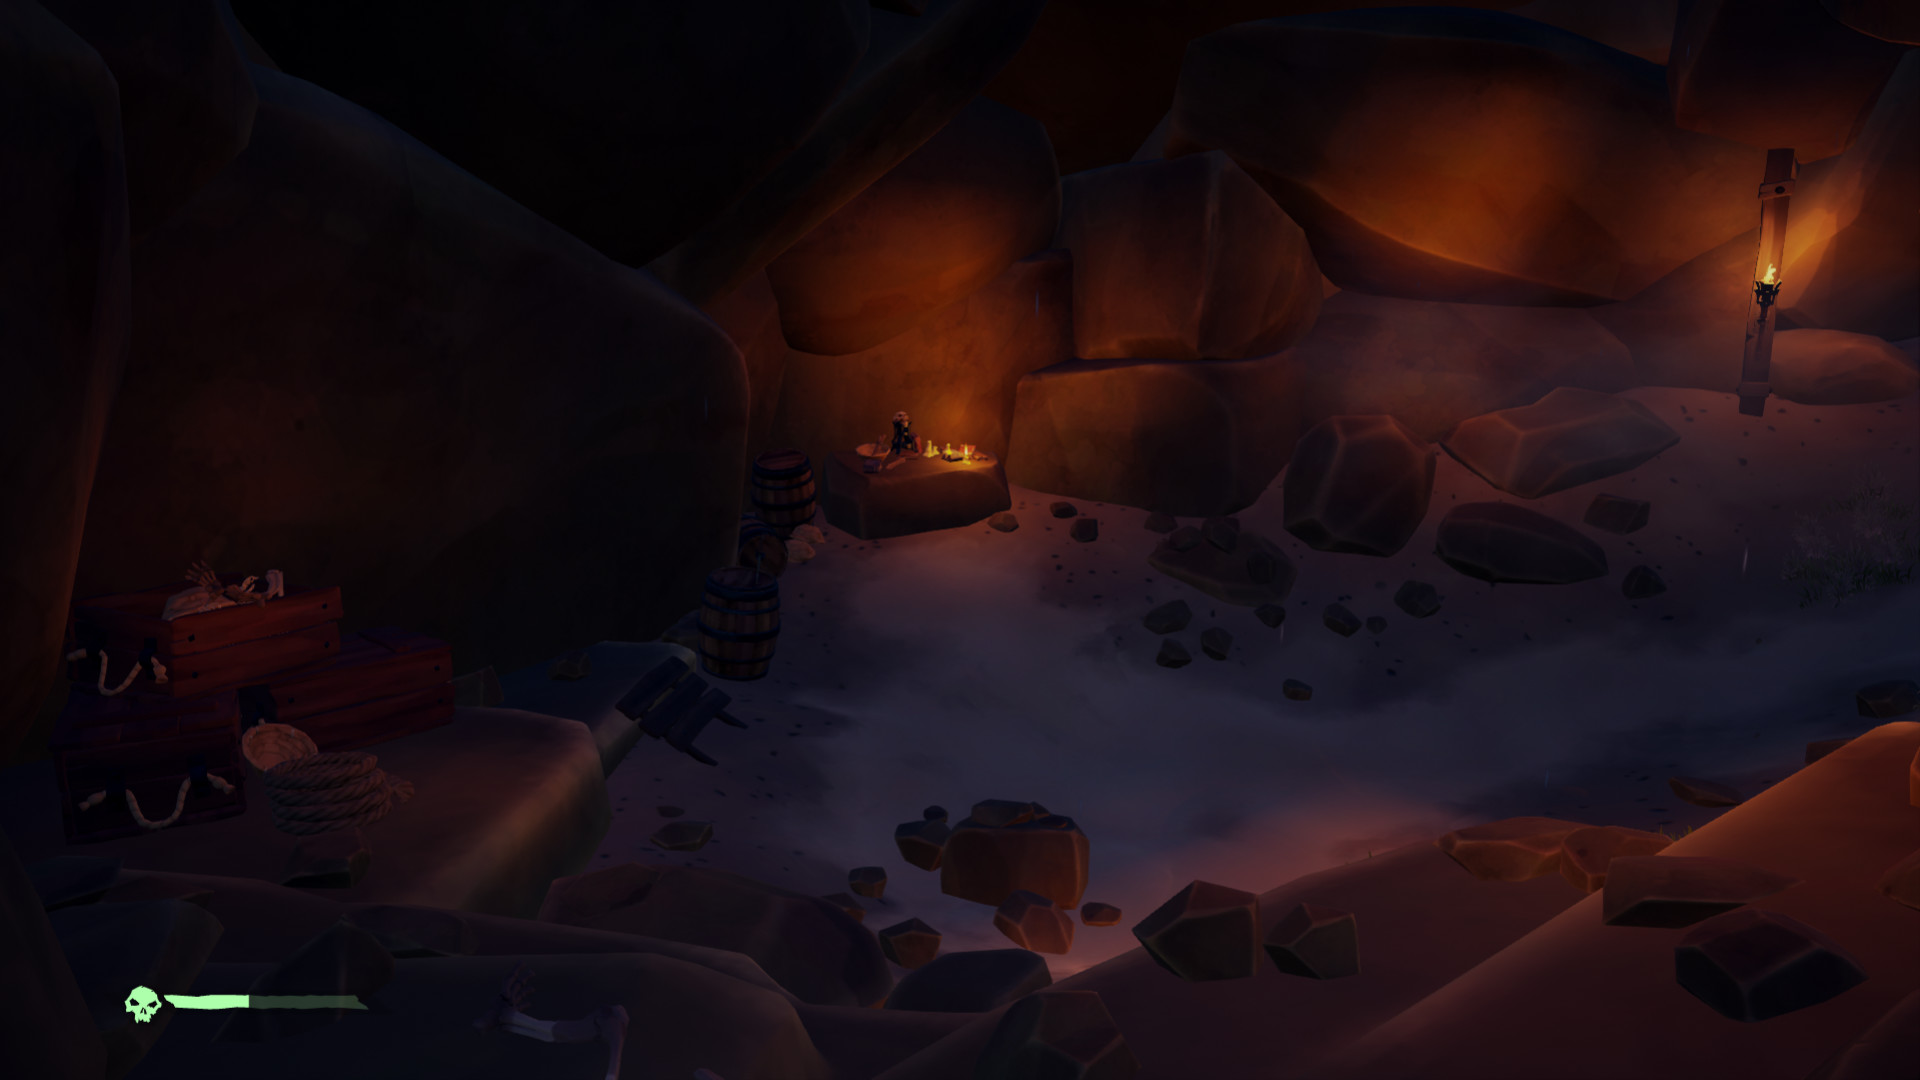 The cave in Cannon Cove was the first Area of Interest I worked on, in collaboration with other artists.